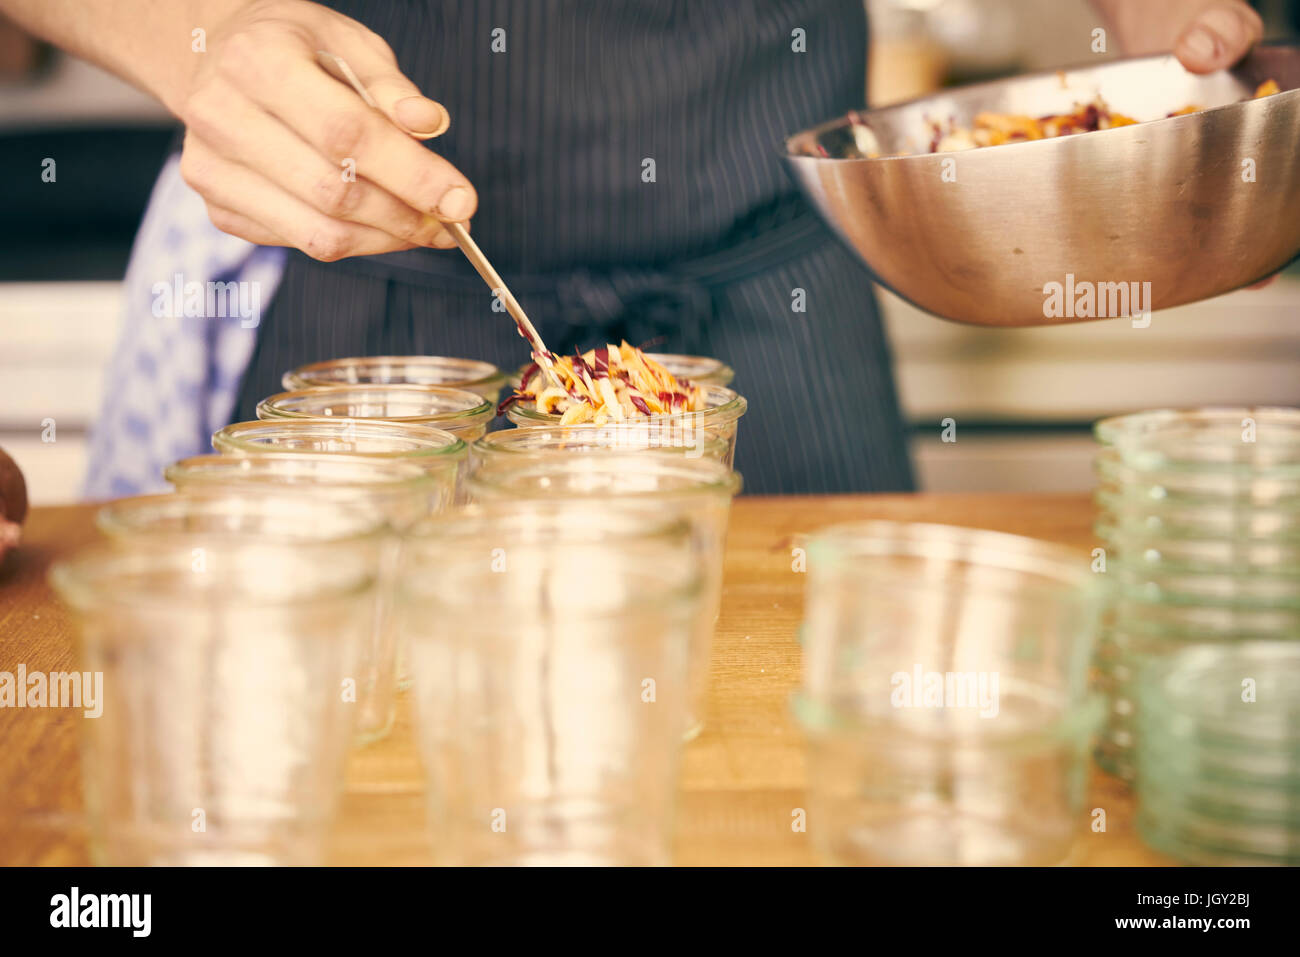 Chef filling plastic containers with portions of food - Stock Image